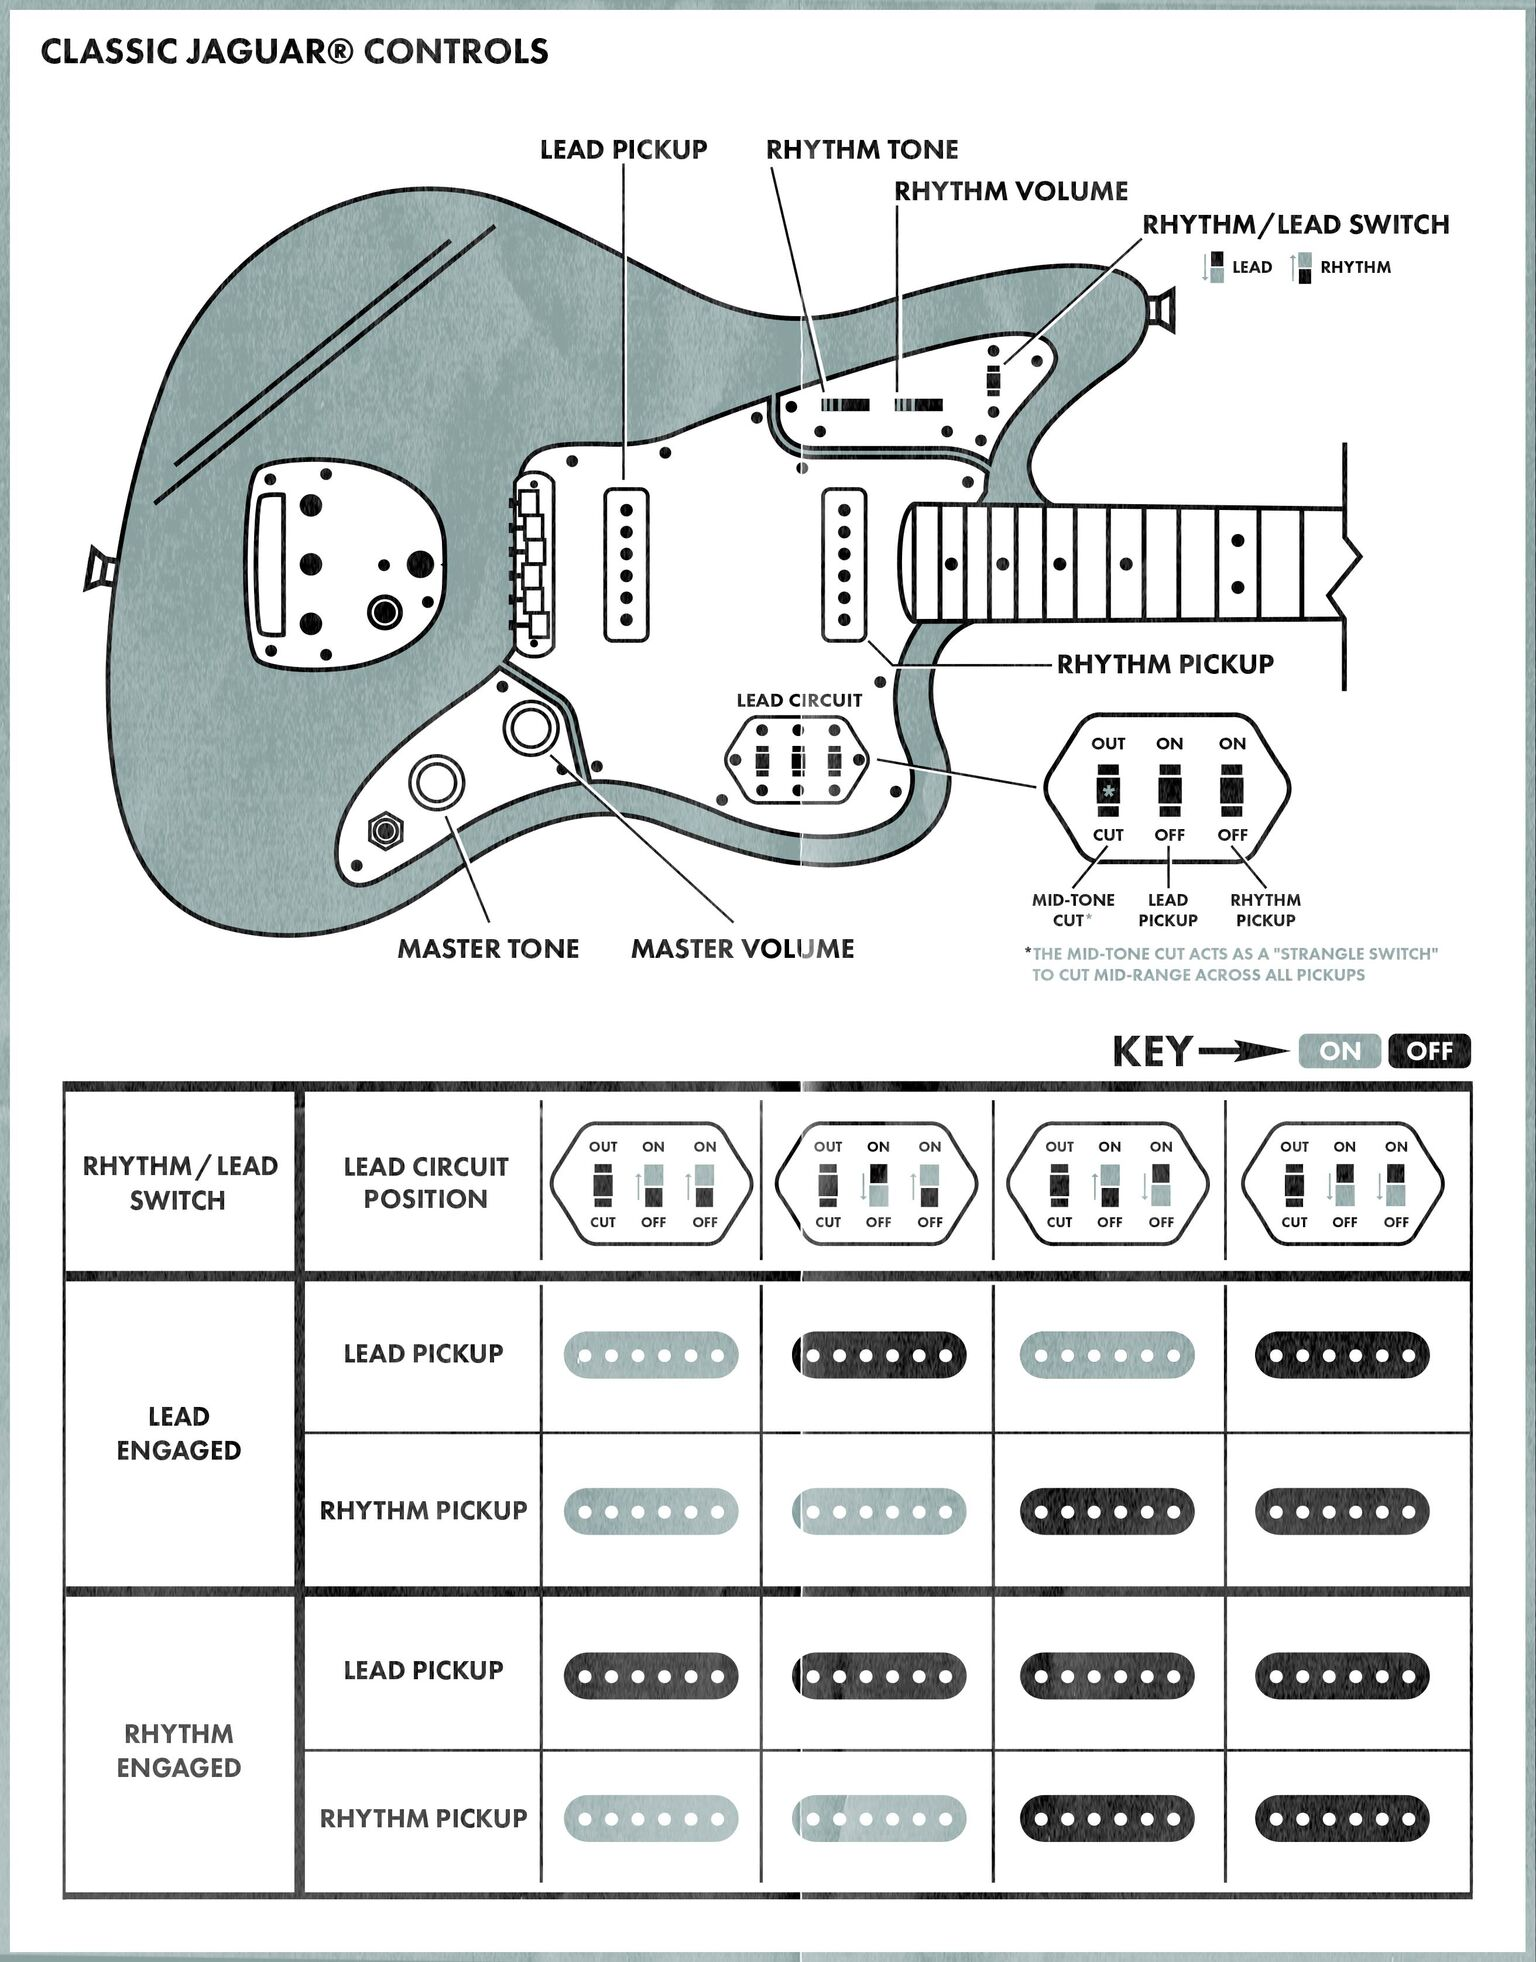 jaguar humbucker guitar wiring diagram wiring diagram Single Coil Guitar Wiring Diagrams jaguar humbucker guitar wiring diagram